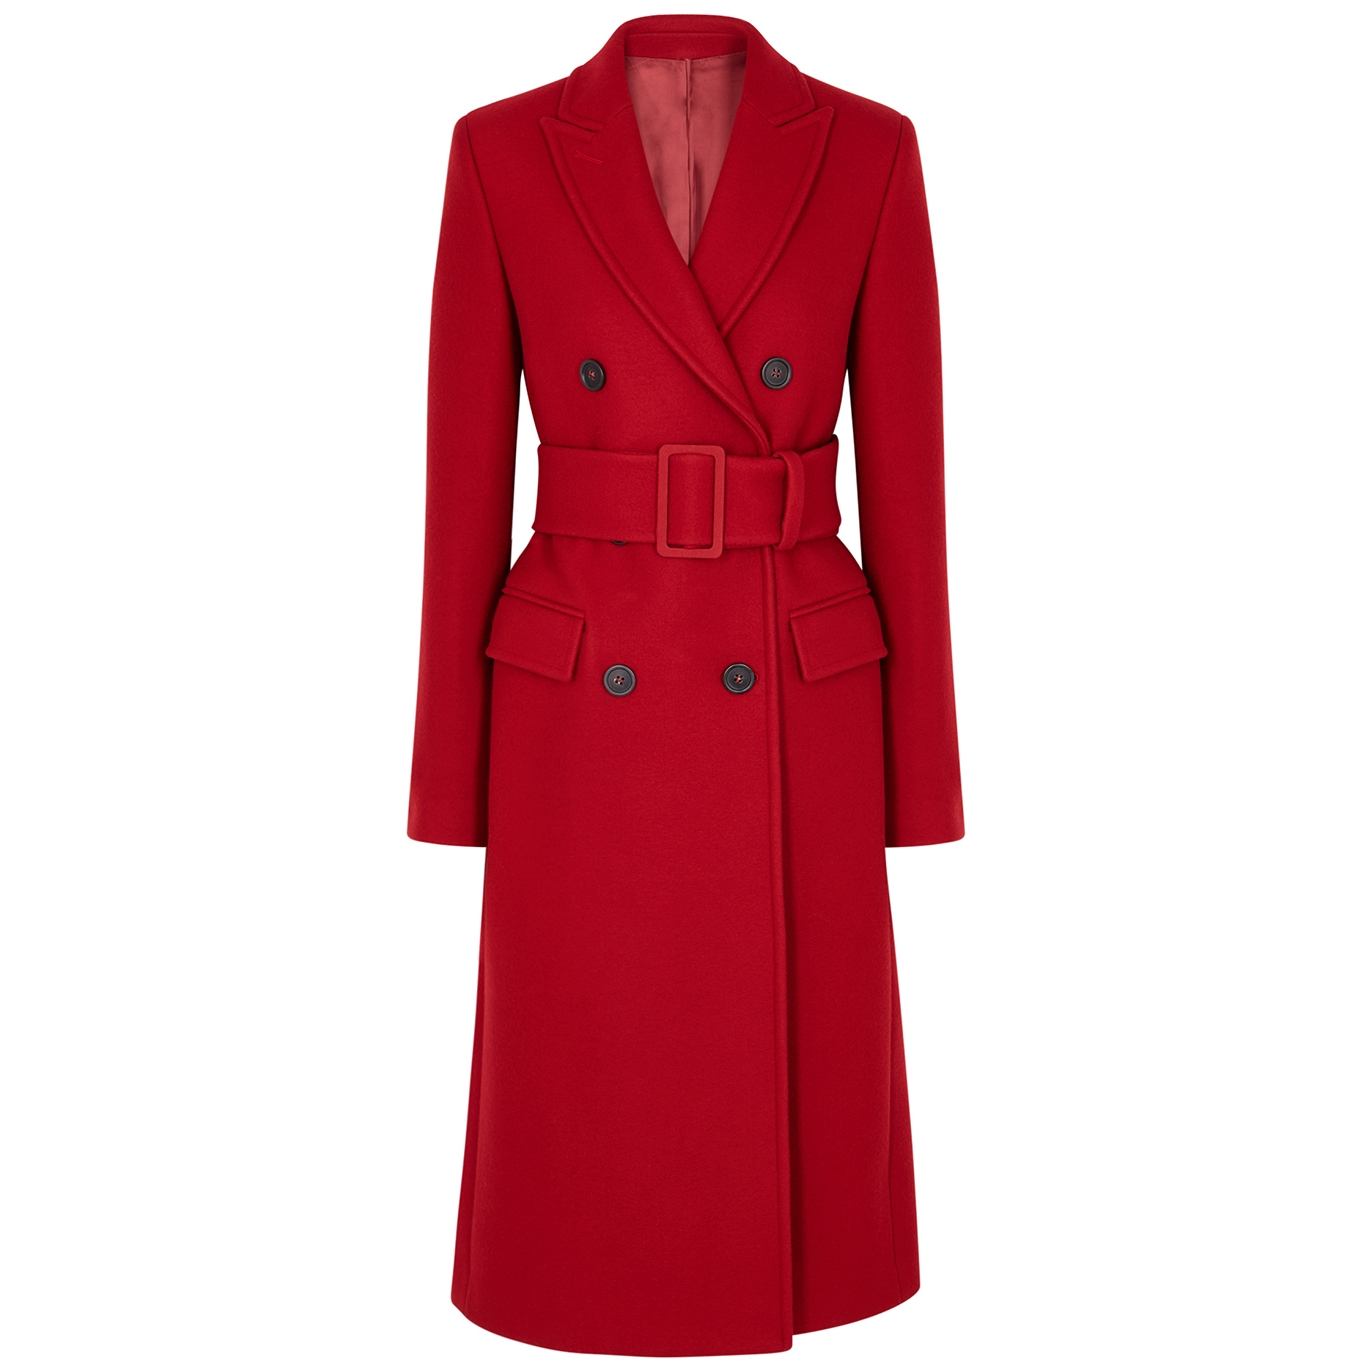 Red double-breasted wool-blend coat